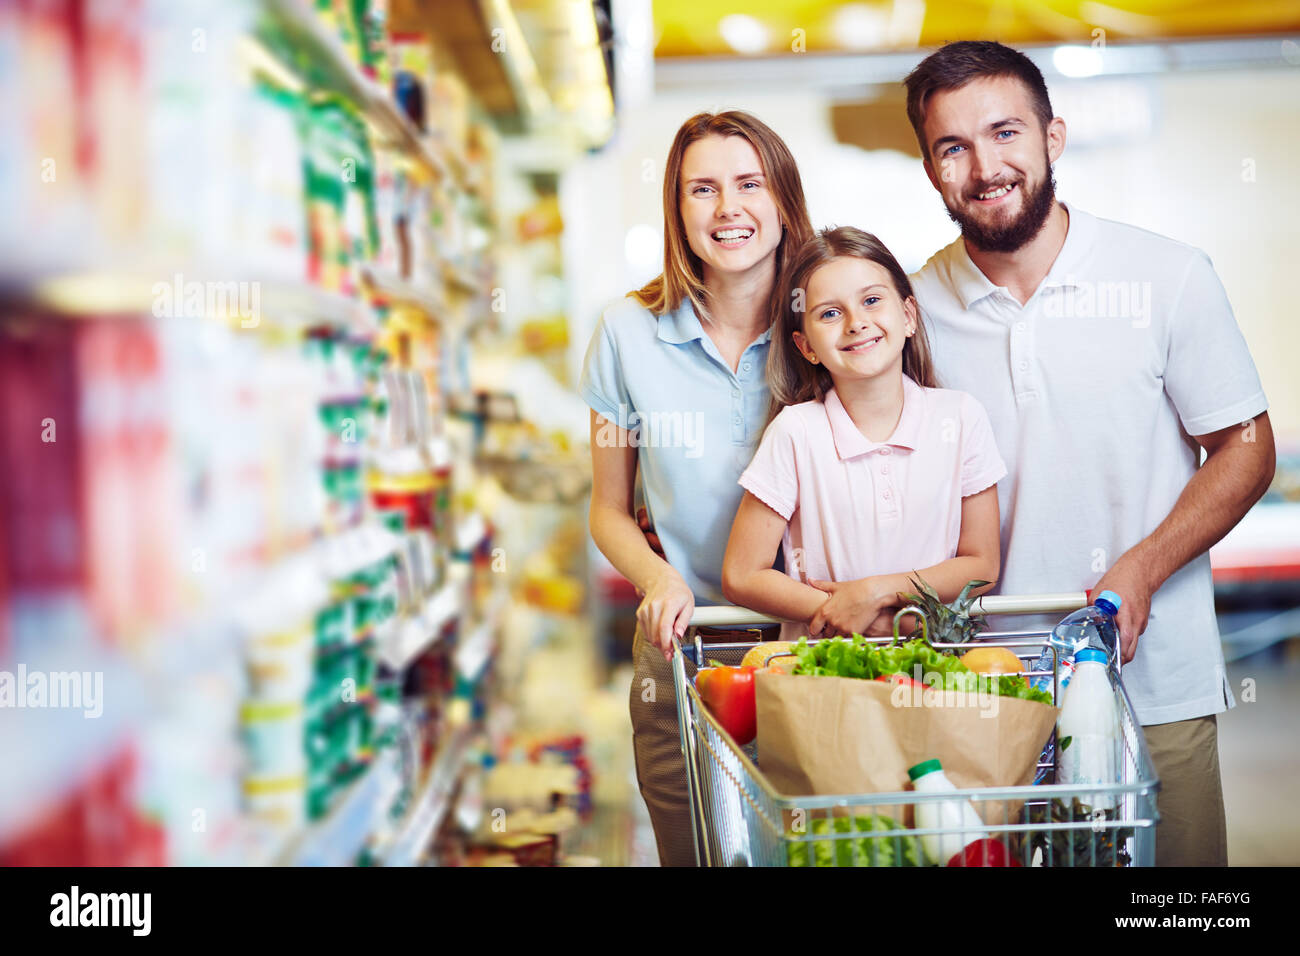 Family with chopping cart during shopping at vegetable supermarket - Stock Image